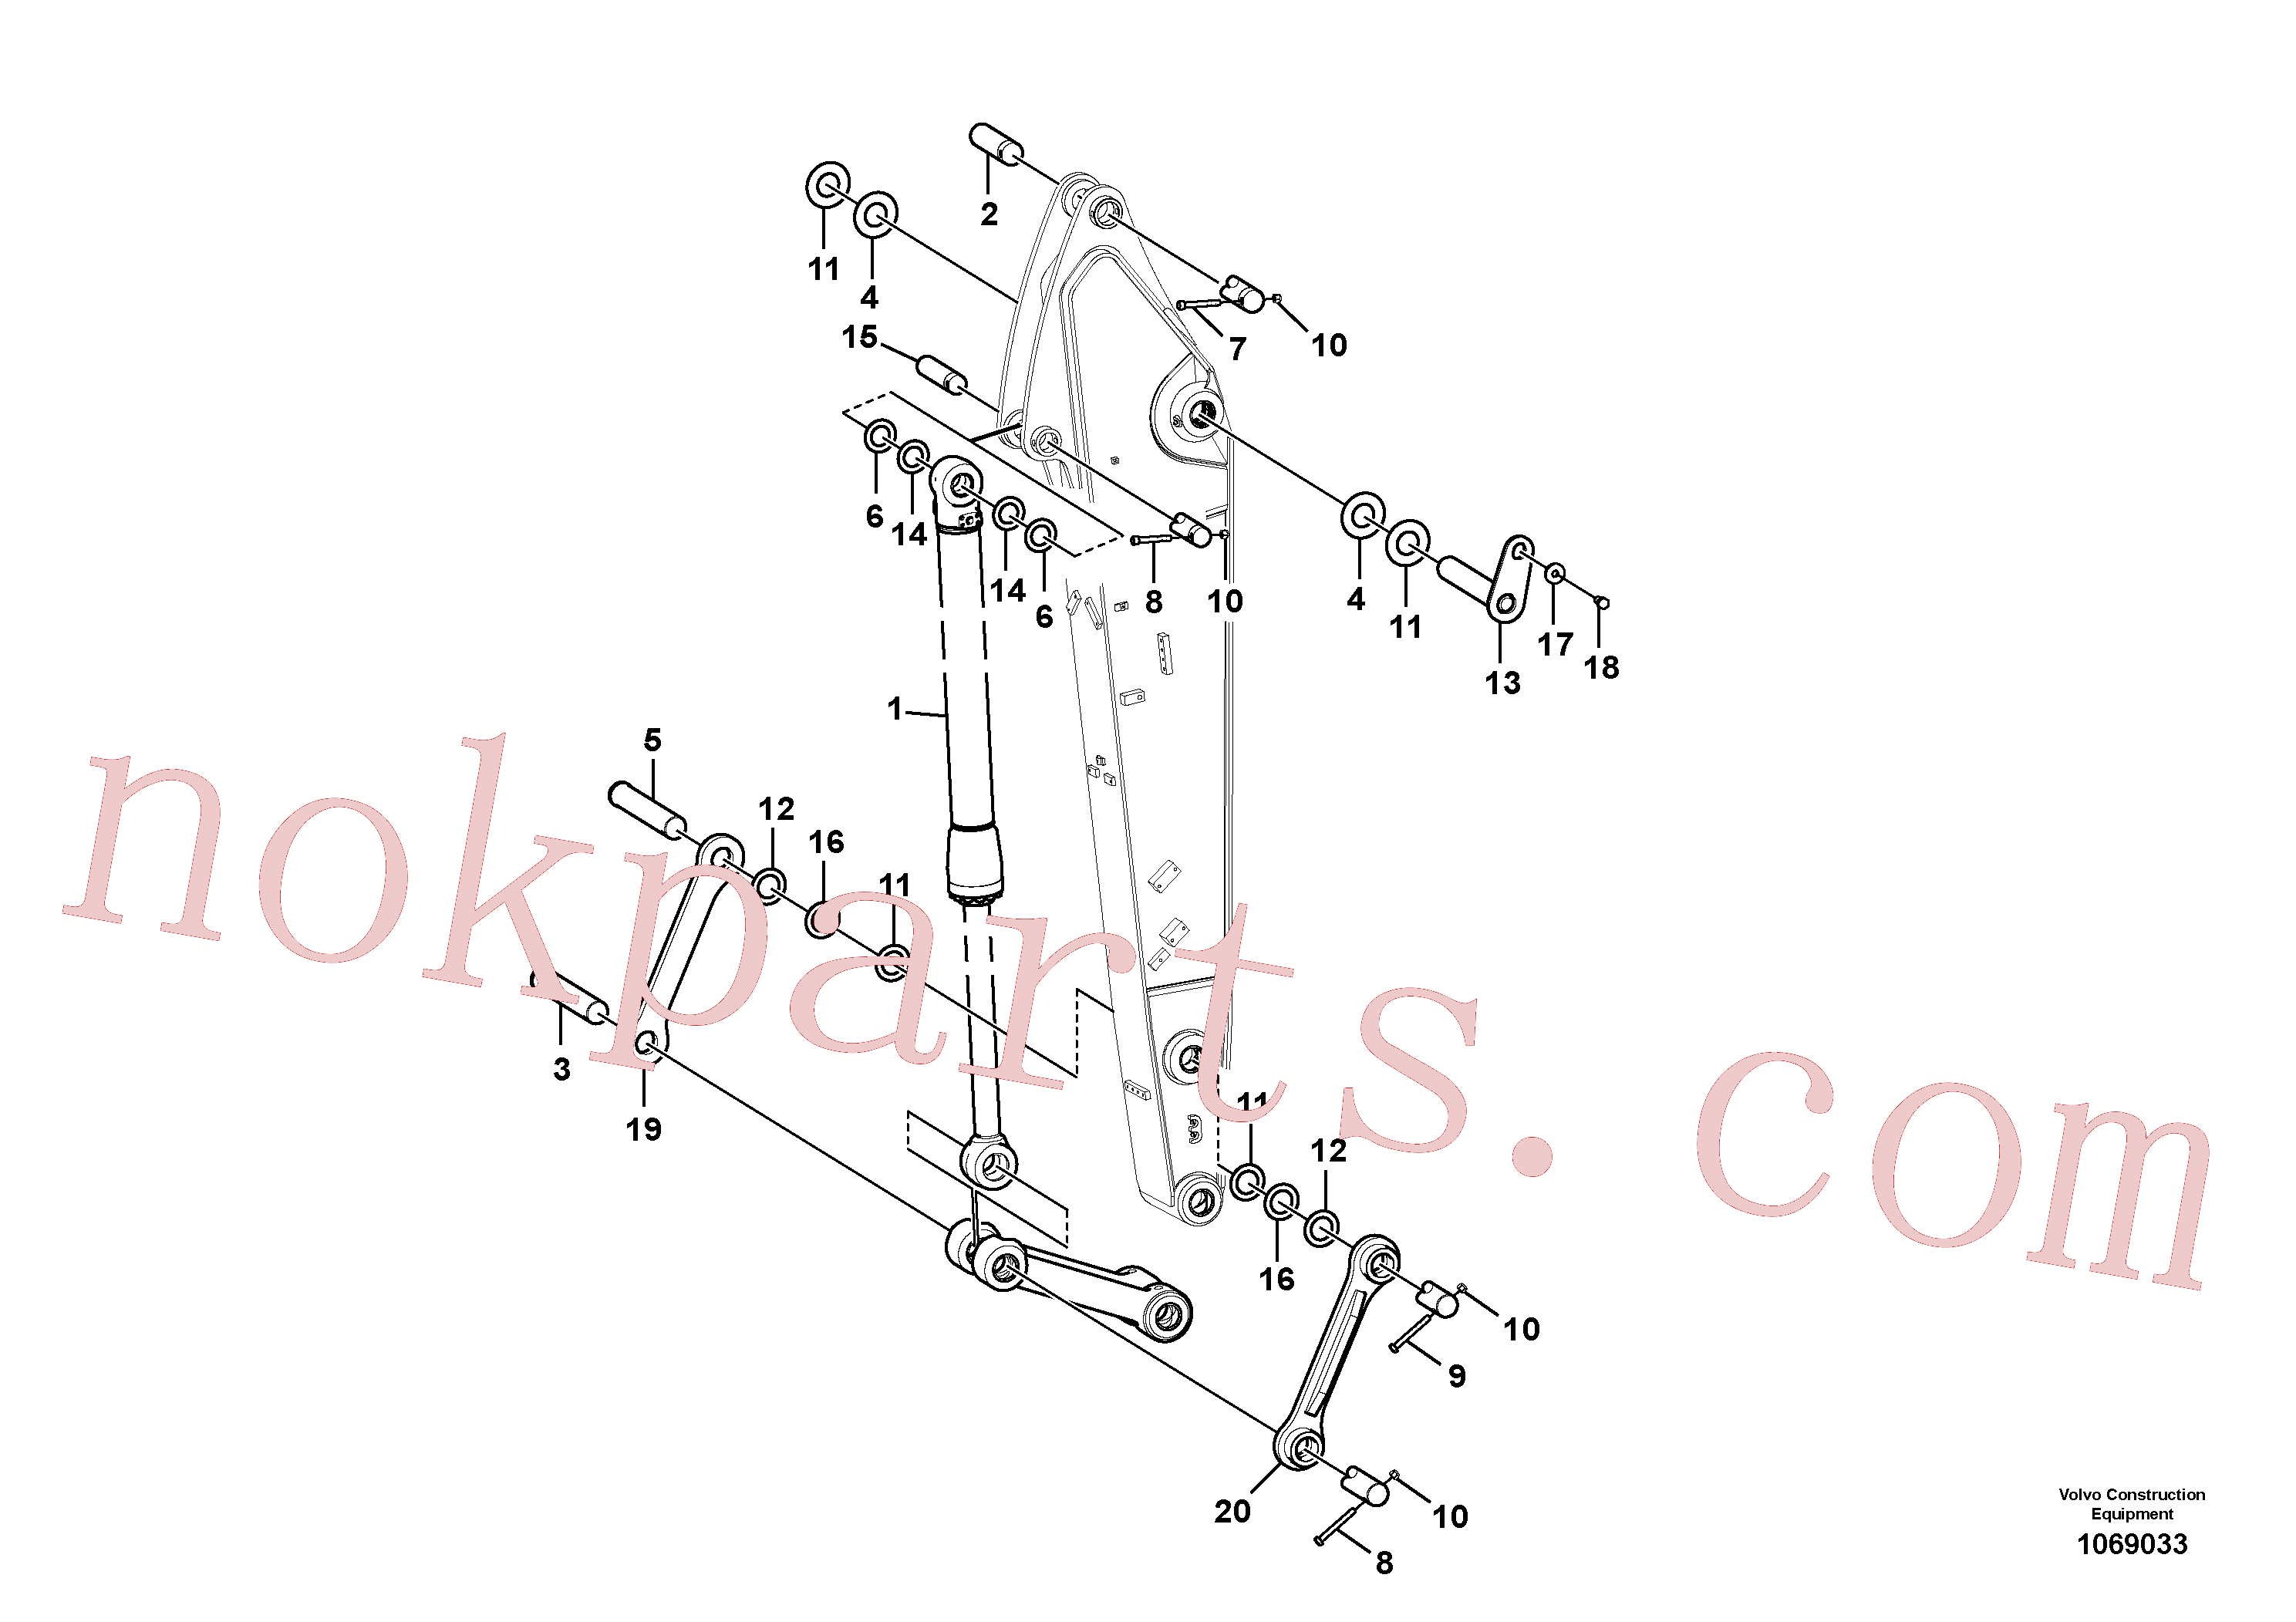 VOE14377910 for Volvo Links to dipper arm(1069033 assembly)